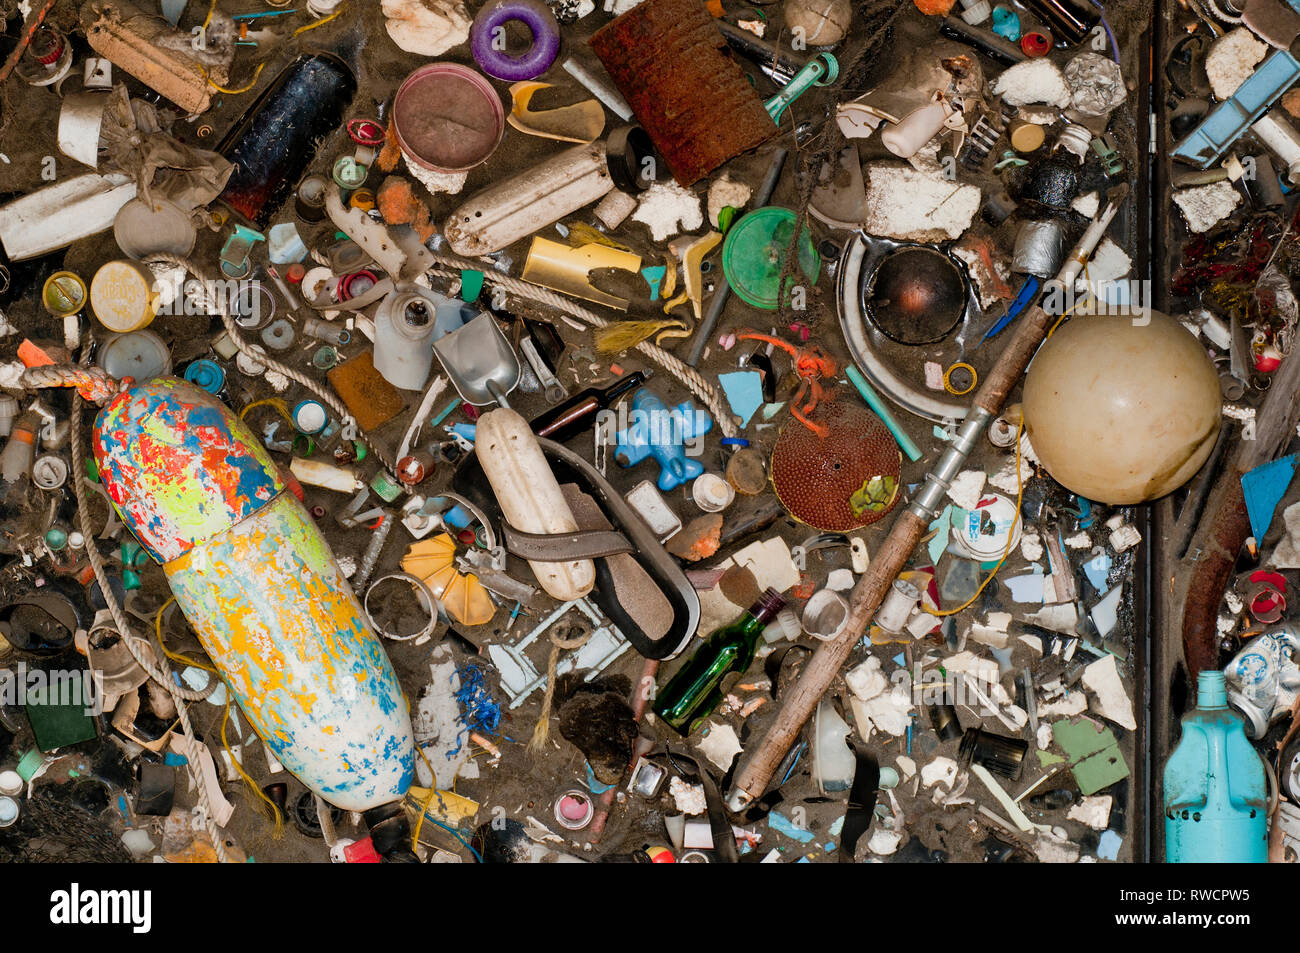 A collection of ocean trash collected near Newport, Oregon on display at the Oregon Coast Aquarium in Newport Oregon - Stock Image